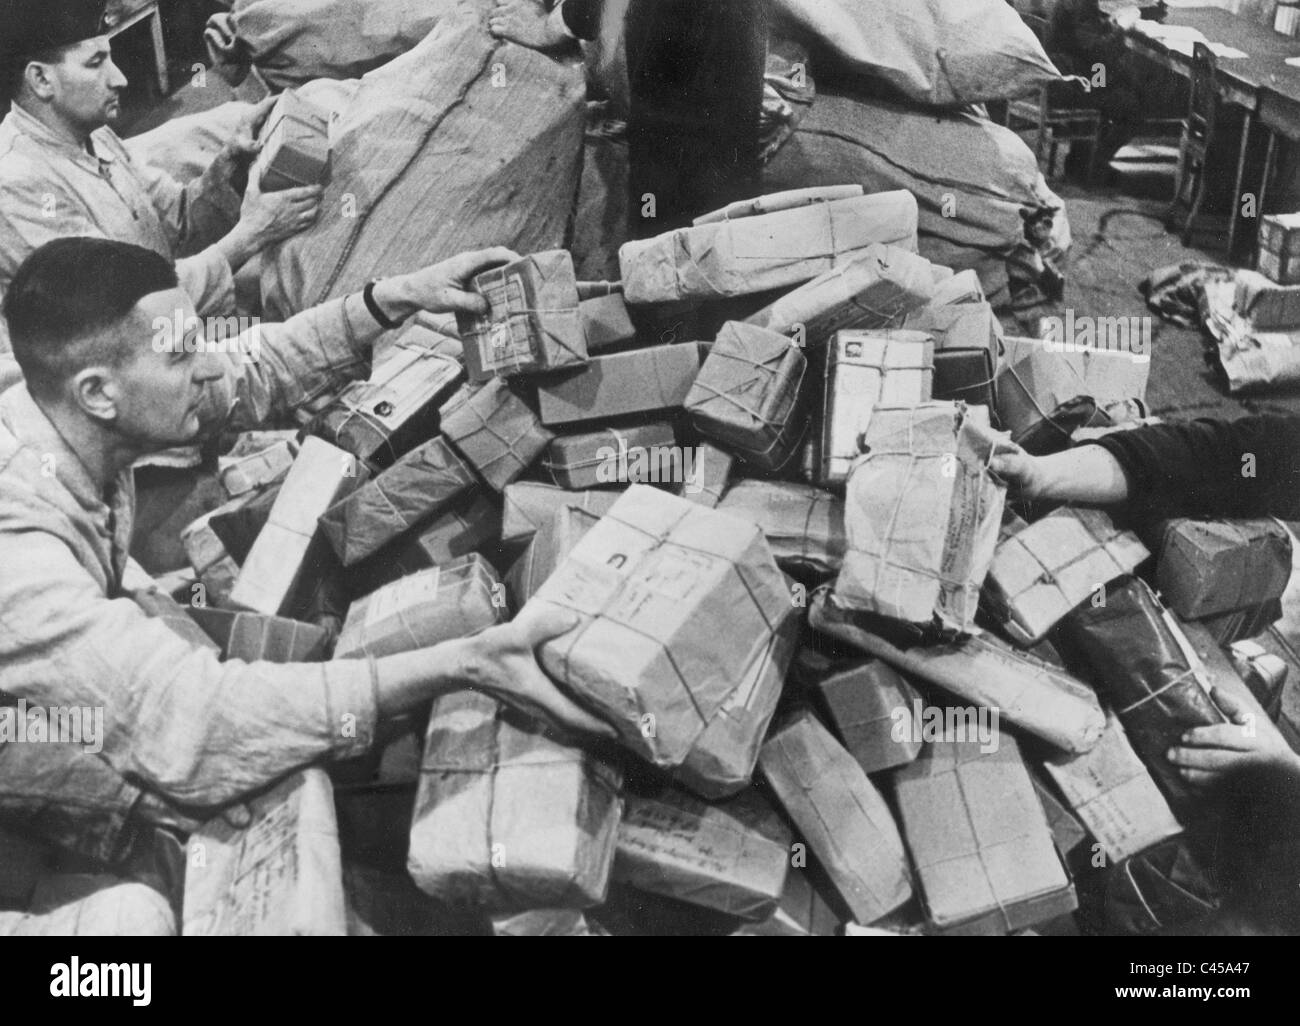 Army postal service on Christmas, 1941 - Stock Image